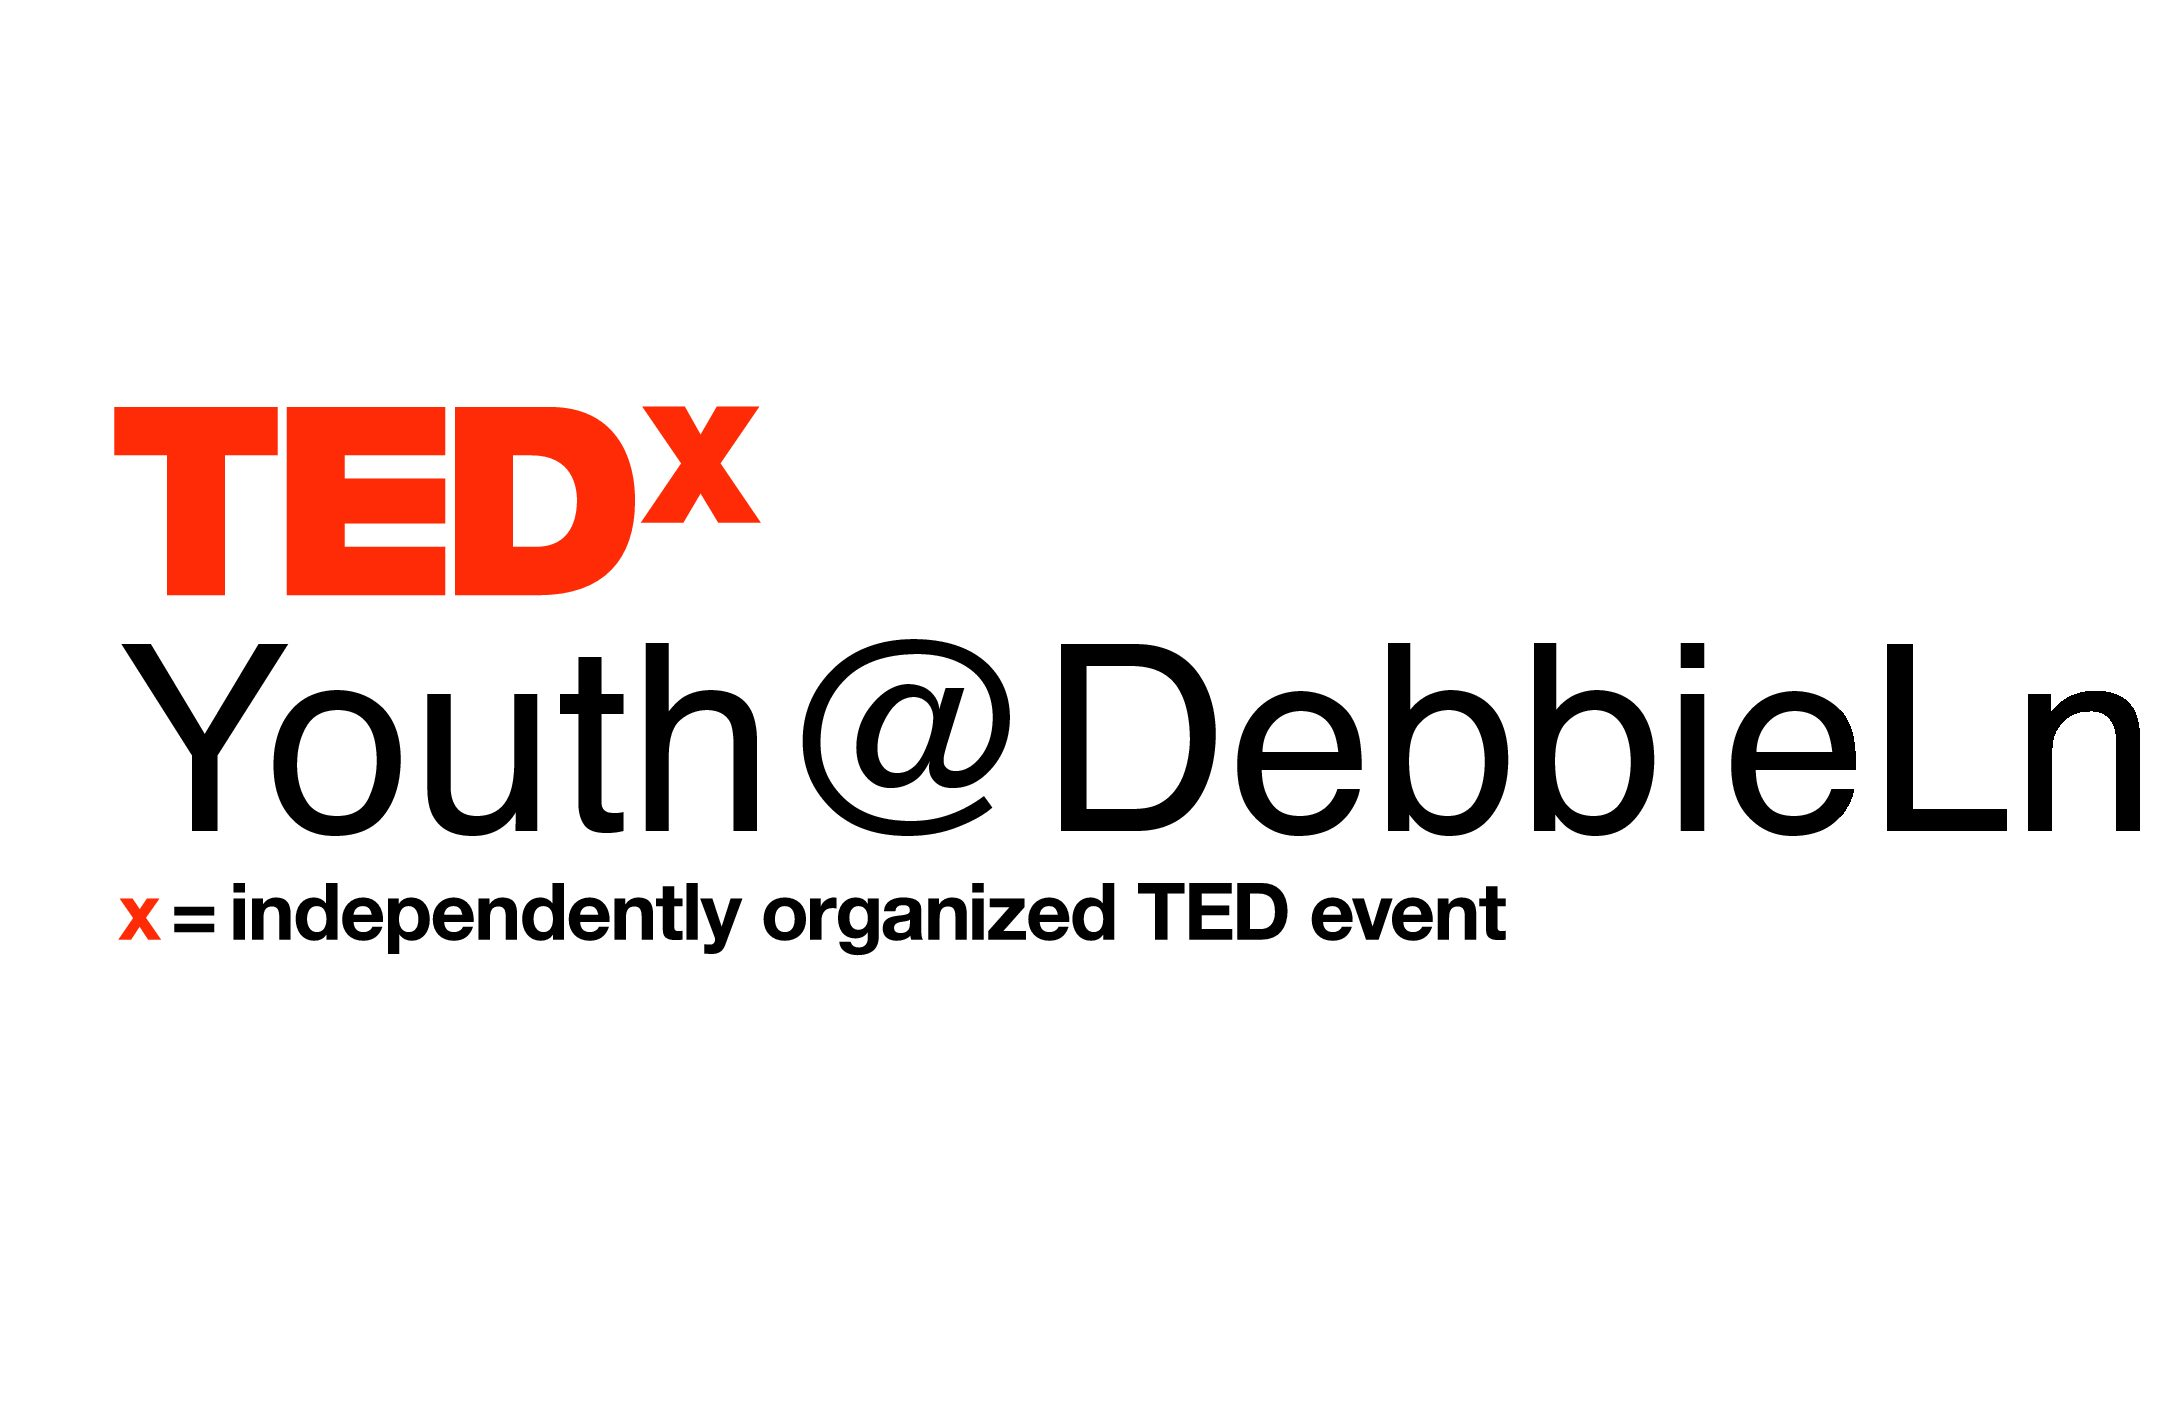 The TEDx event will be held on  June 10.